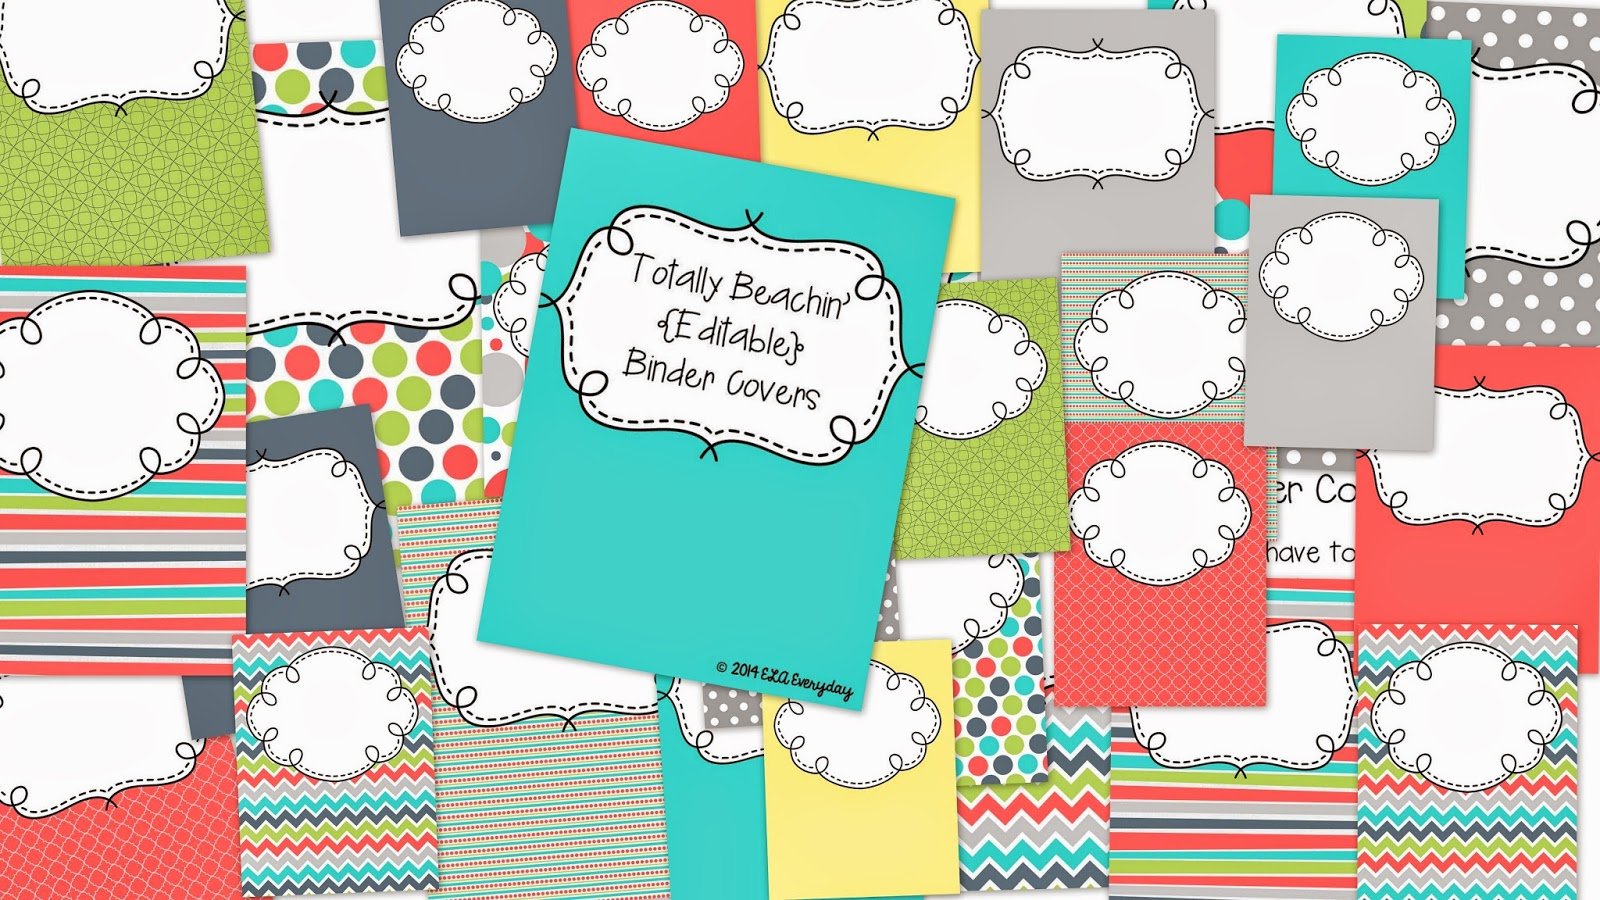 http://www.teacherspayteachers.com/Product/Totally-Beachin-Editable-Binder-Covers-1367649